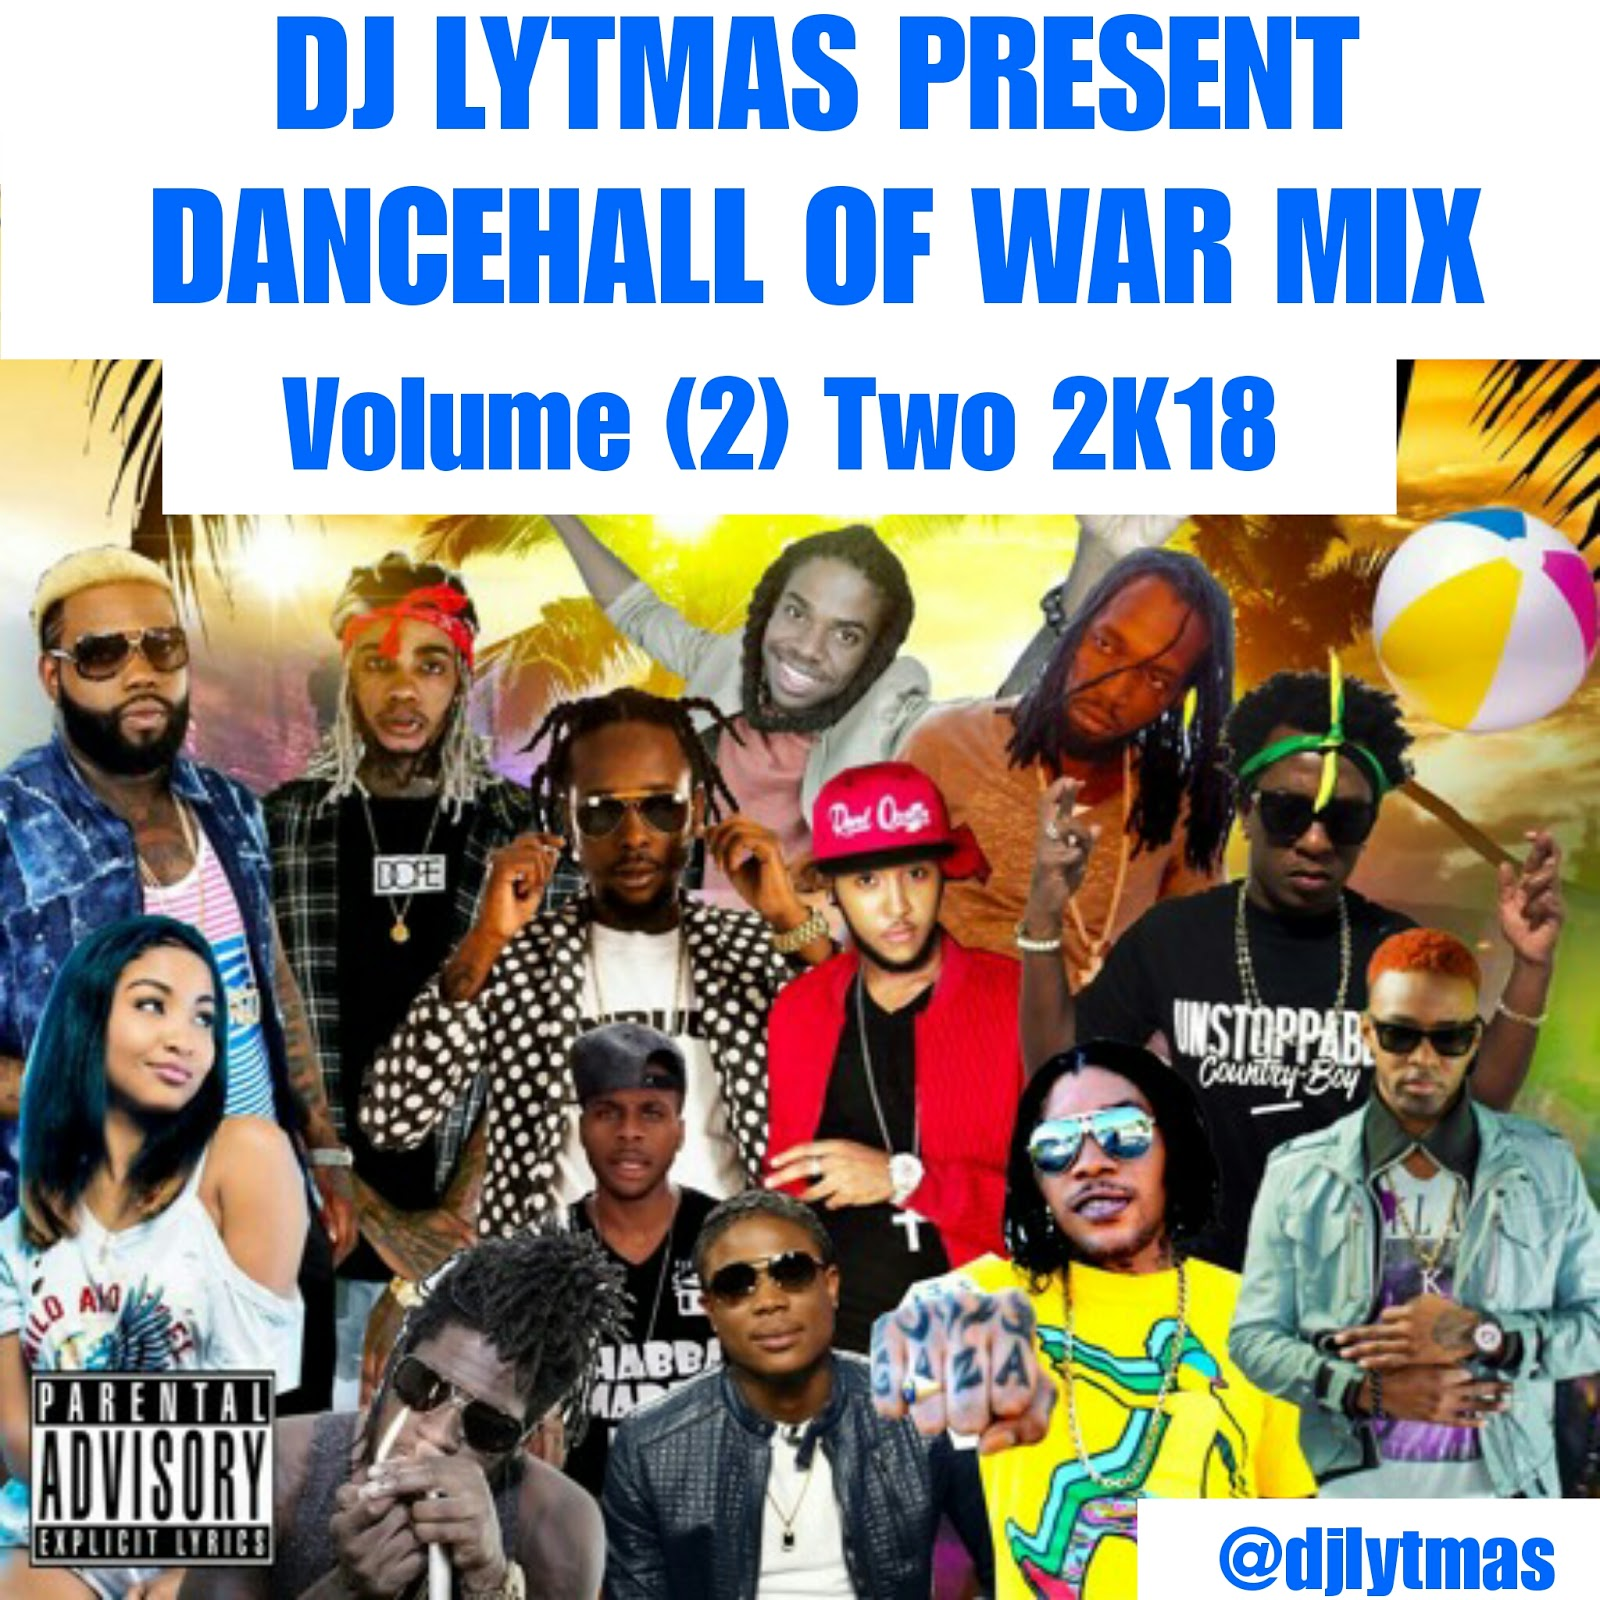 DJ LYTMAS - Dancehall Of War Vol 2 Mix 2018, Vybz Kartel, Mavado